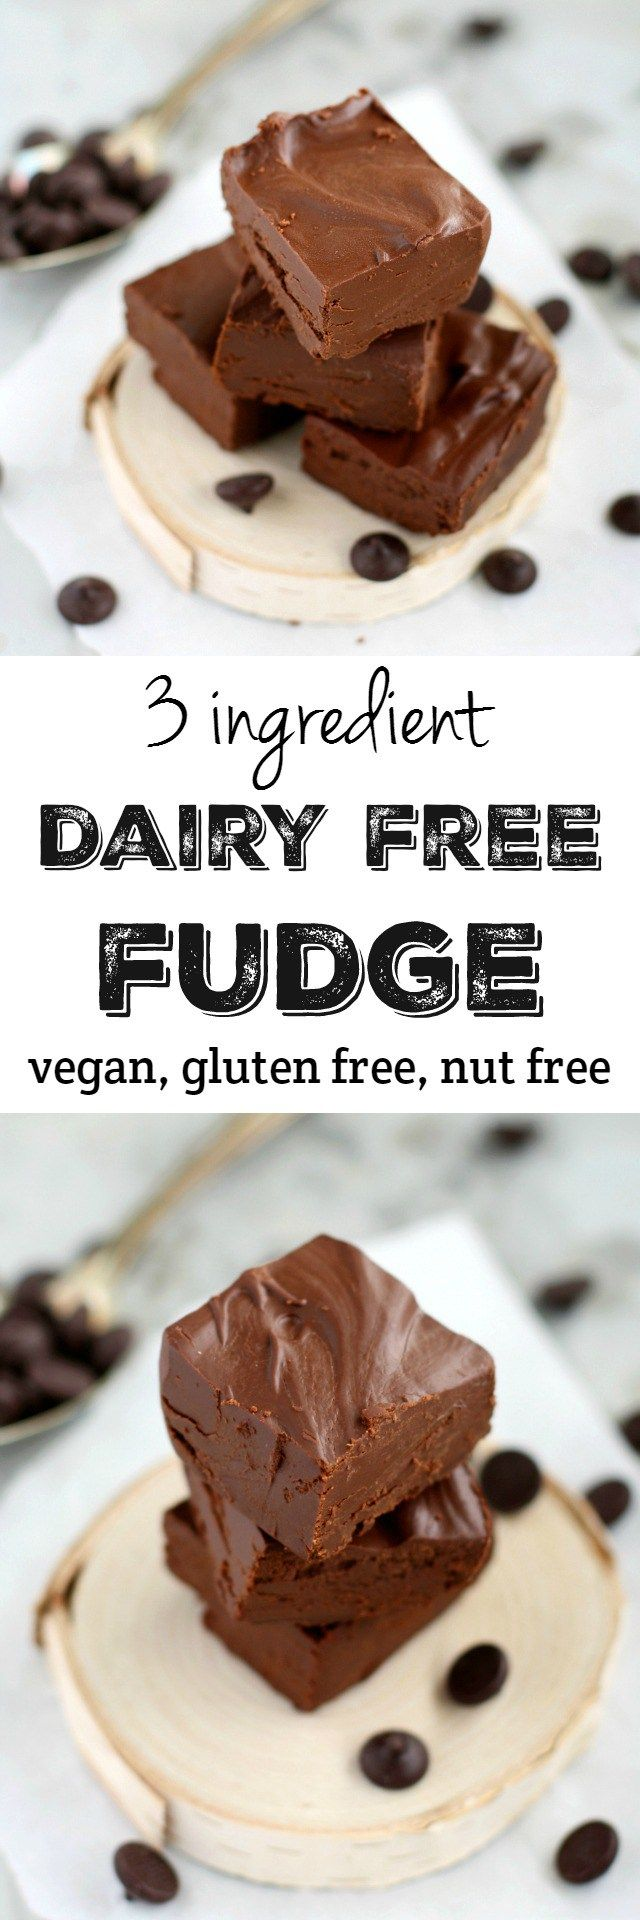 You won't believe how rich, creamy, and delicious this dairy free fudge is! …